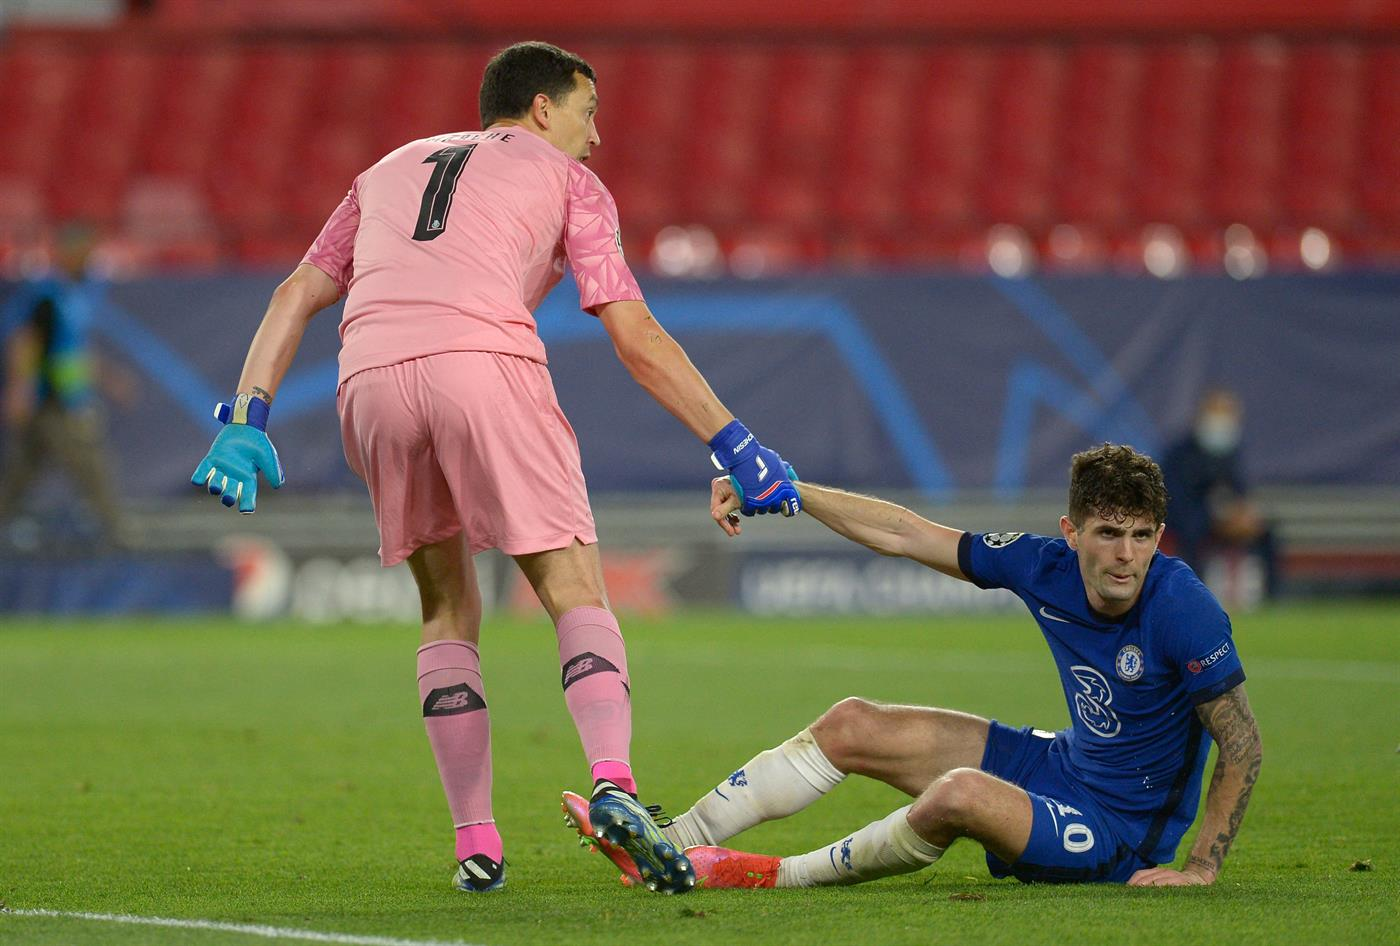 FC Porto's Argentine goalkeeper Agustin Marchesin (L) helps Chelsea's US midfielder Christian Pulisic